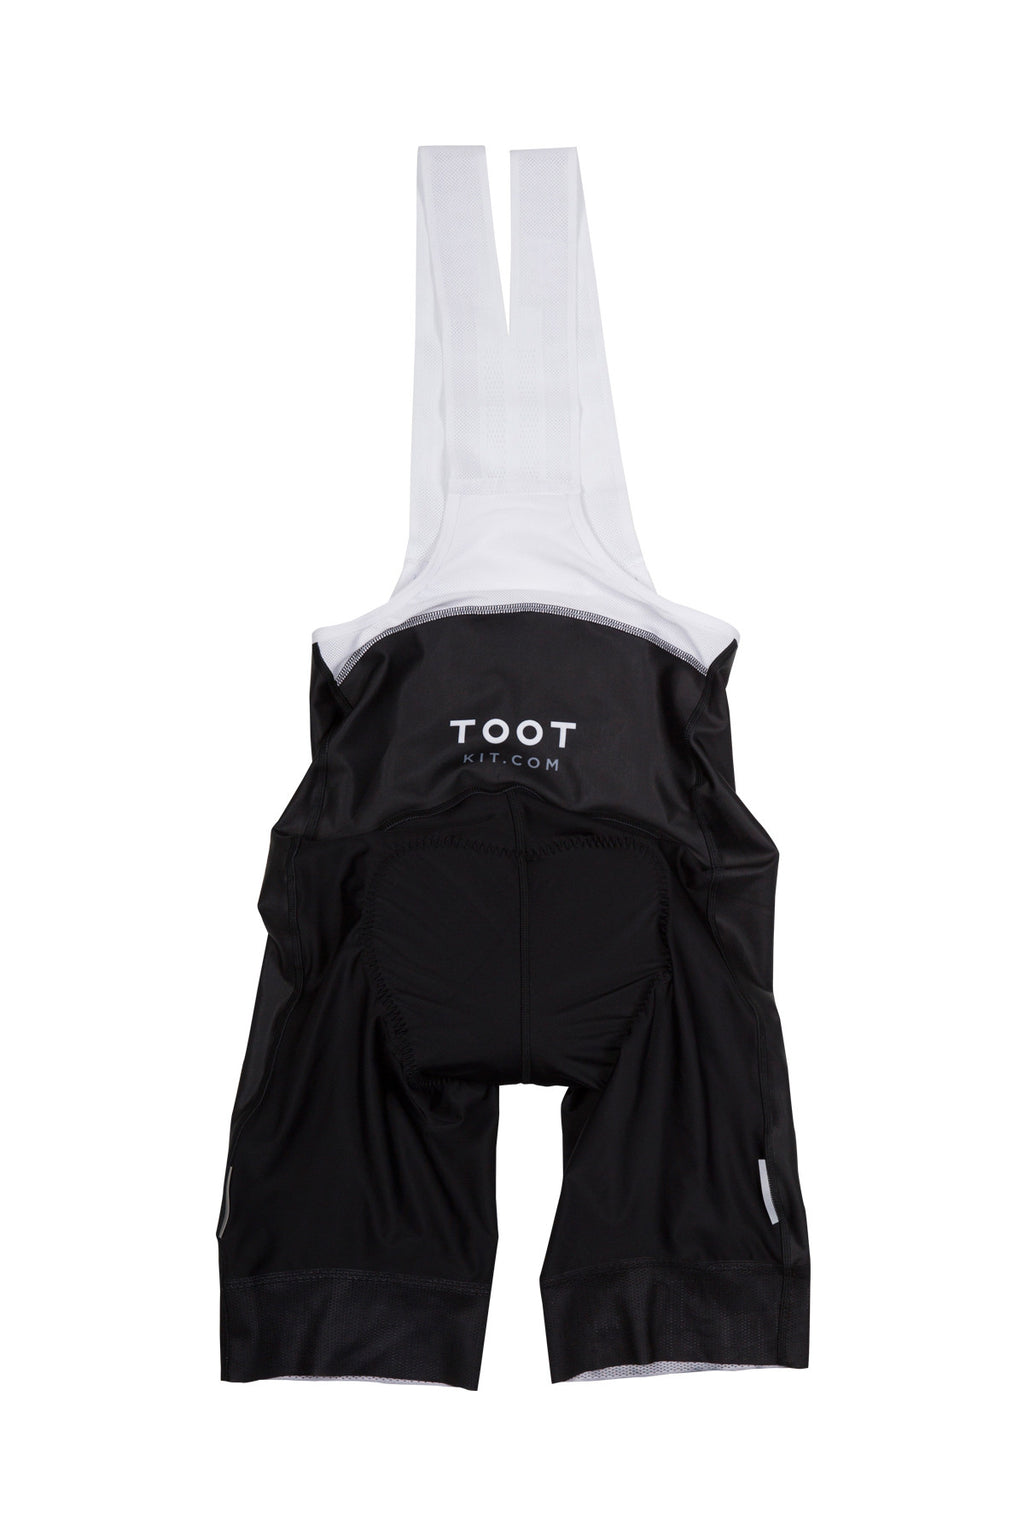 SAMPLE STOCK - WOMENS BIBS - BLACK